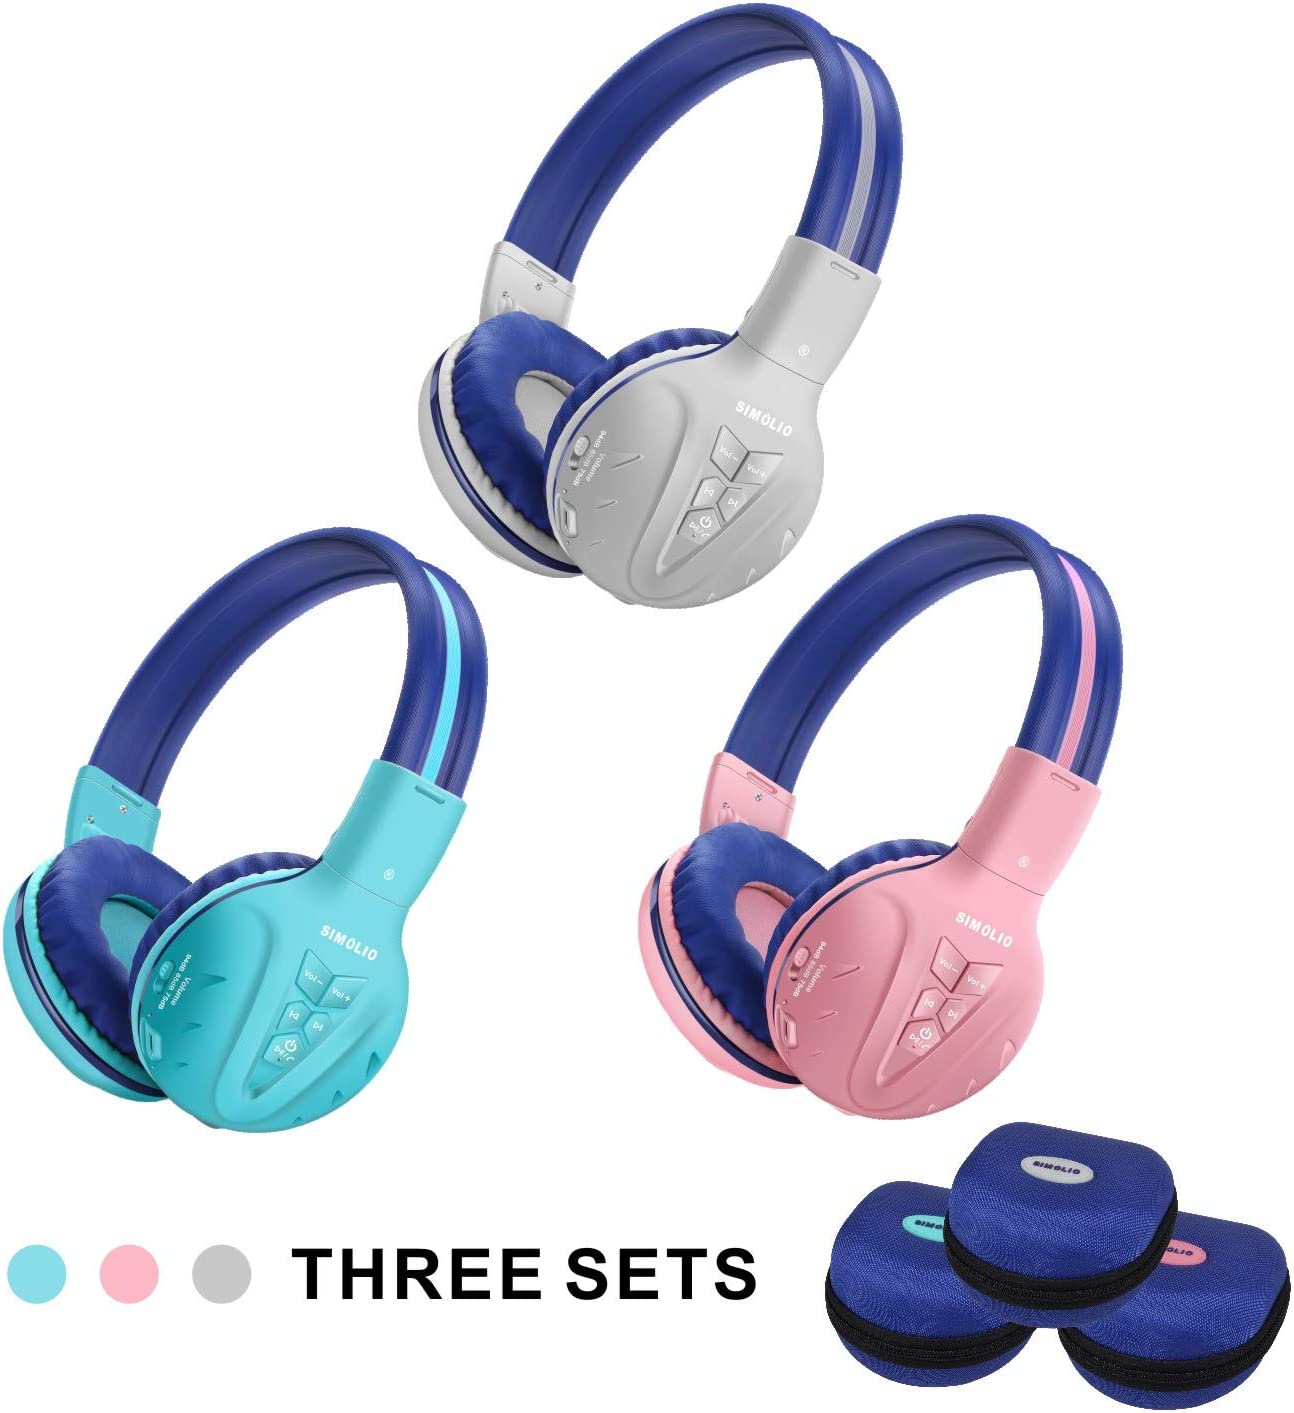 Amazon Com 3 Pack Simolio Bluetooth Headphones For Kids Hearing Protection Children Headphones Wireless Bluetooth Kids Headphone With Music Share Kids Safe Headsets For Girls Boys Wireless Headphone For Toddlers Electronics